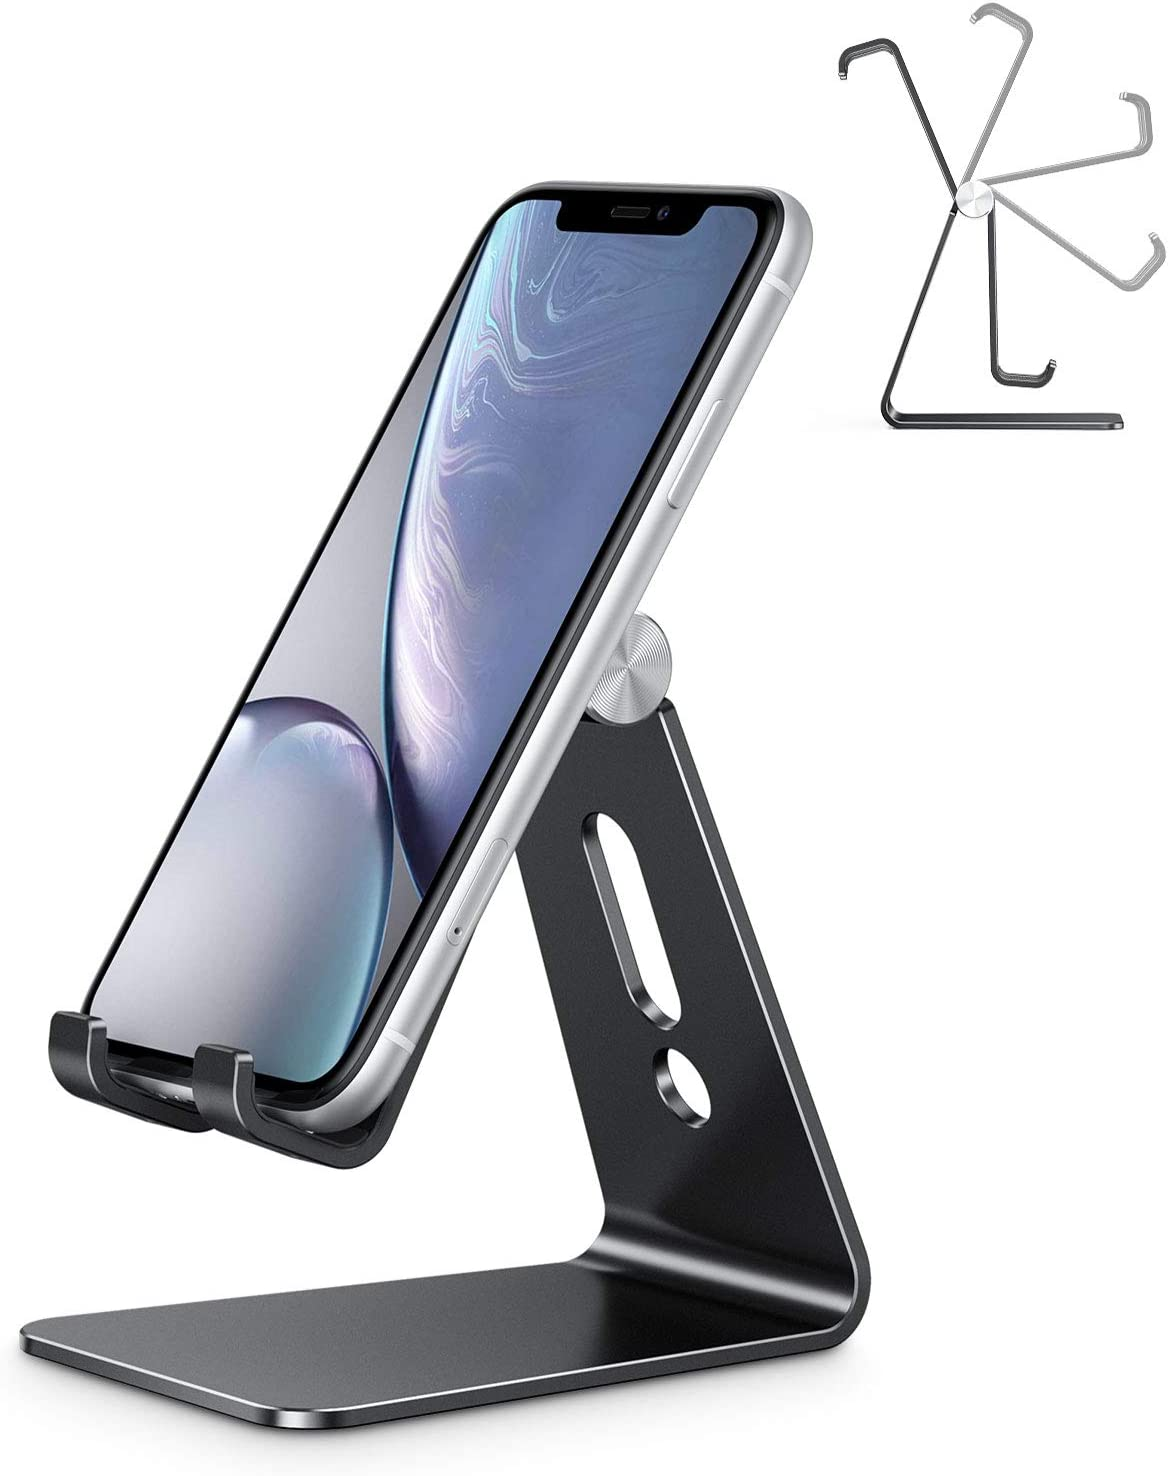 Adjustable Cell Phone Stand, OMOTON C2 Aluminum Desktop Phone Dock Holder Compatible with iPhone 11 Pro, SE, XR, 8 Plus 7 6, Samsung Galaxy, Google Pixel and More, Black